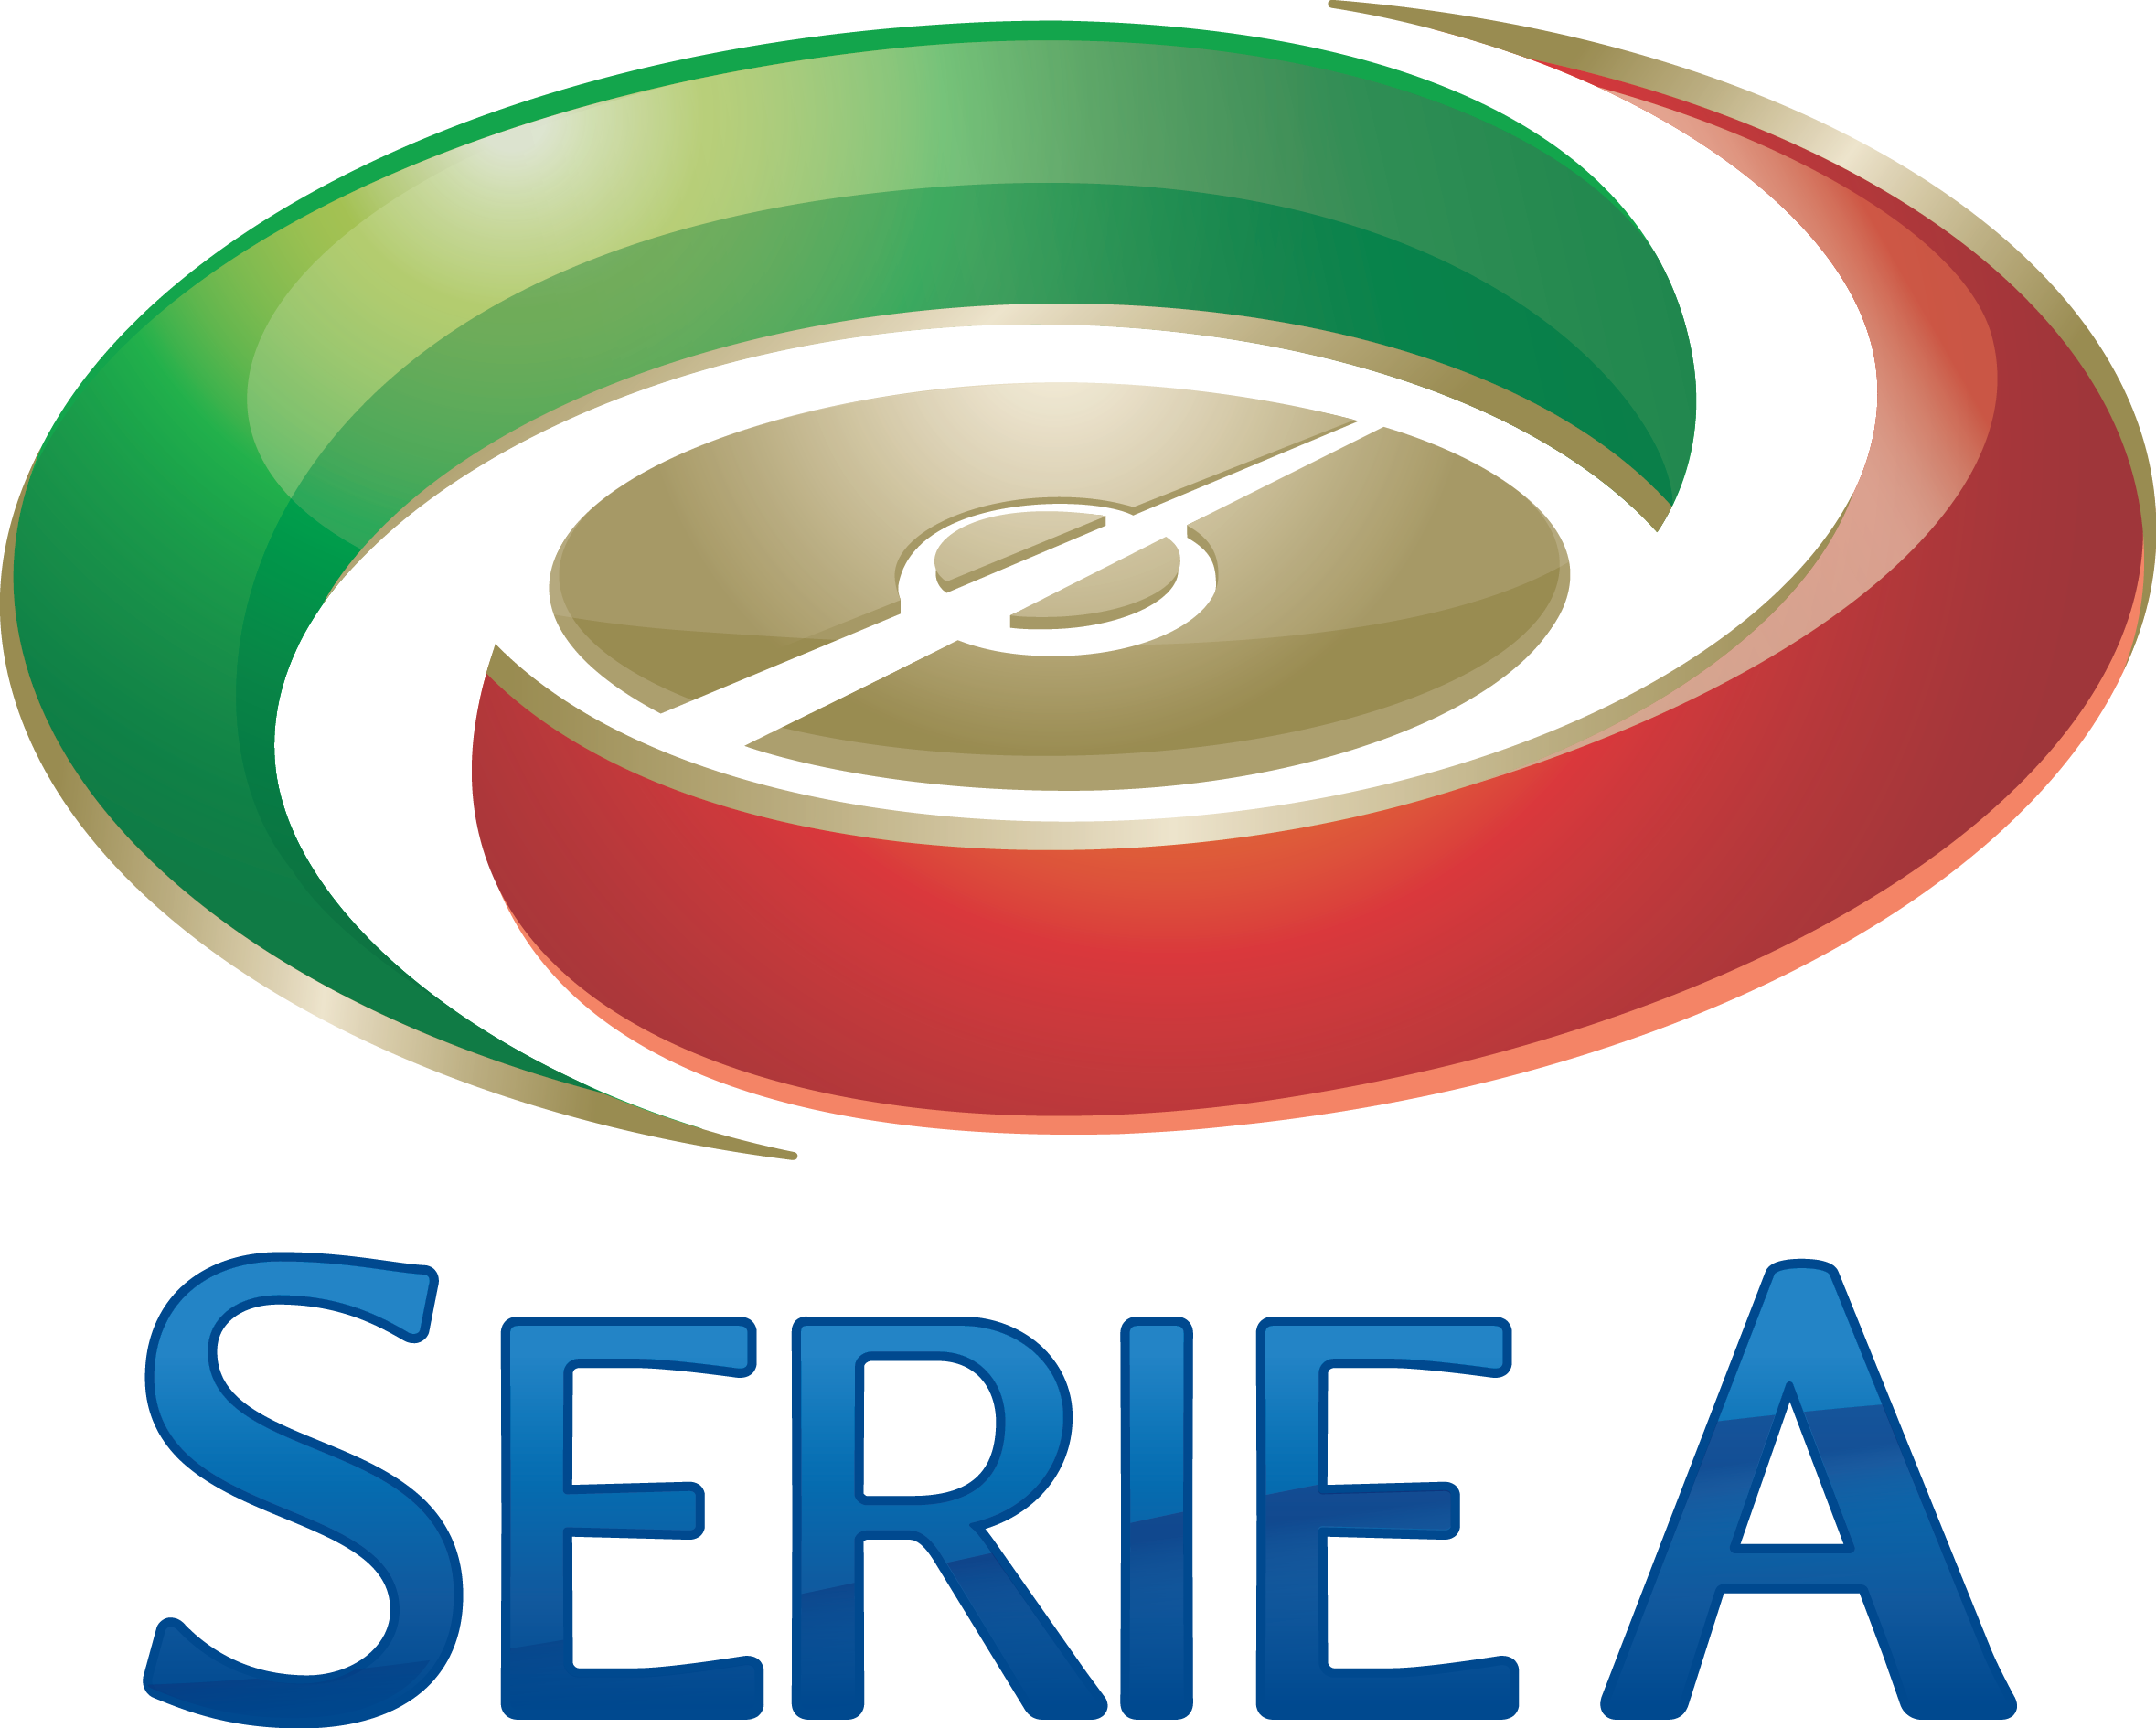 Lazio vs Genoa 2-0 All goals and highlights 23/09/2015